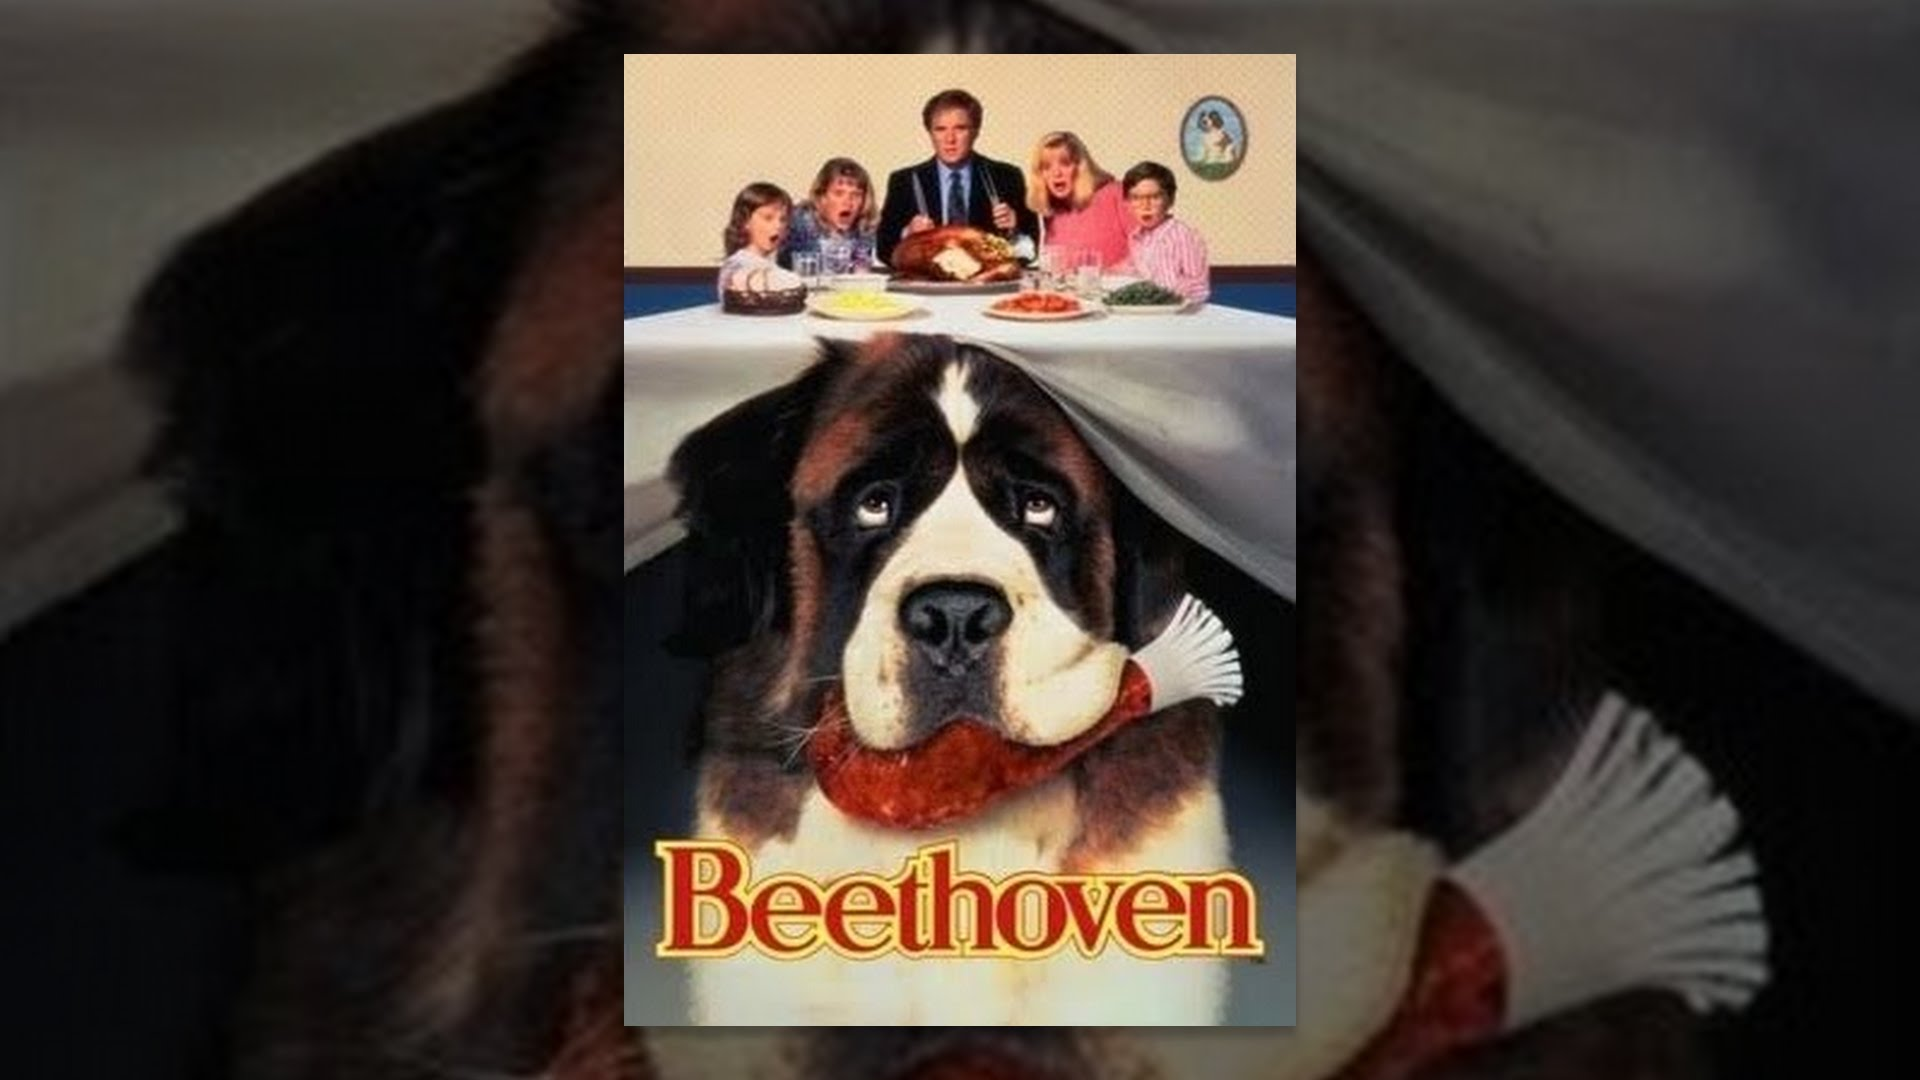 Beethoven - YouTube